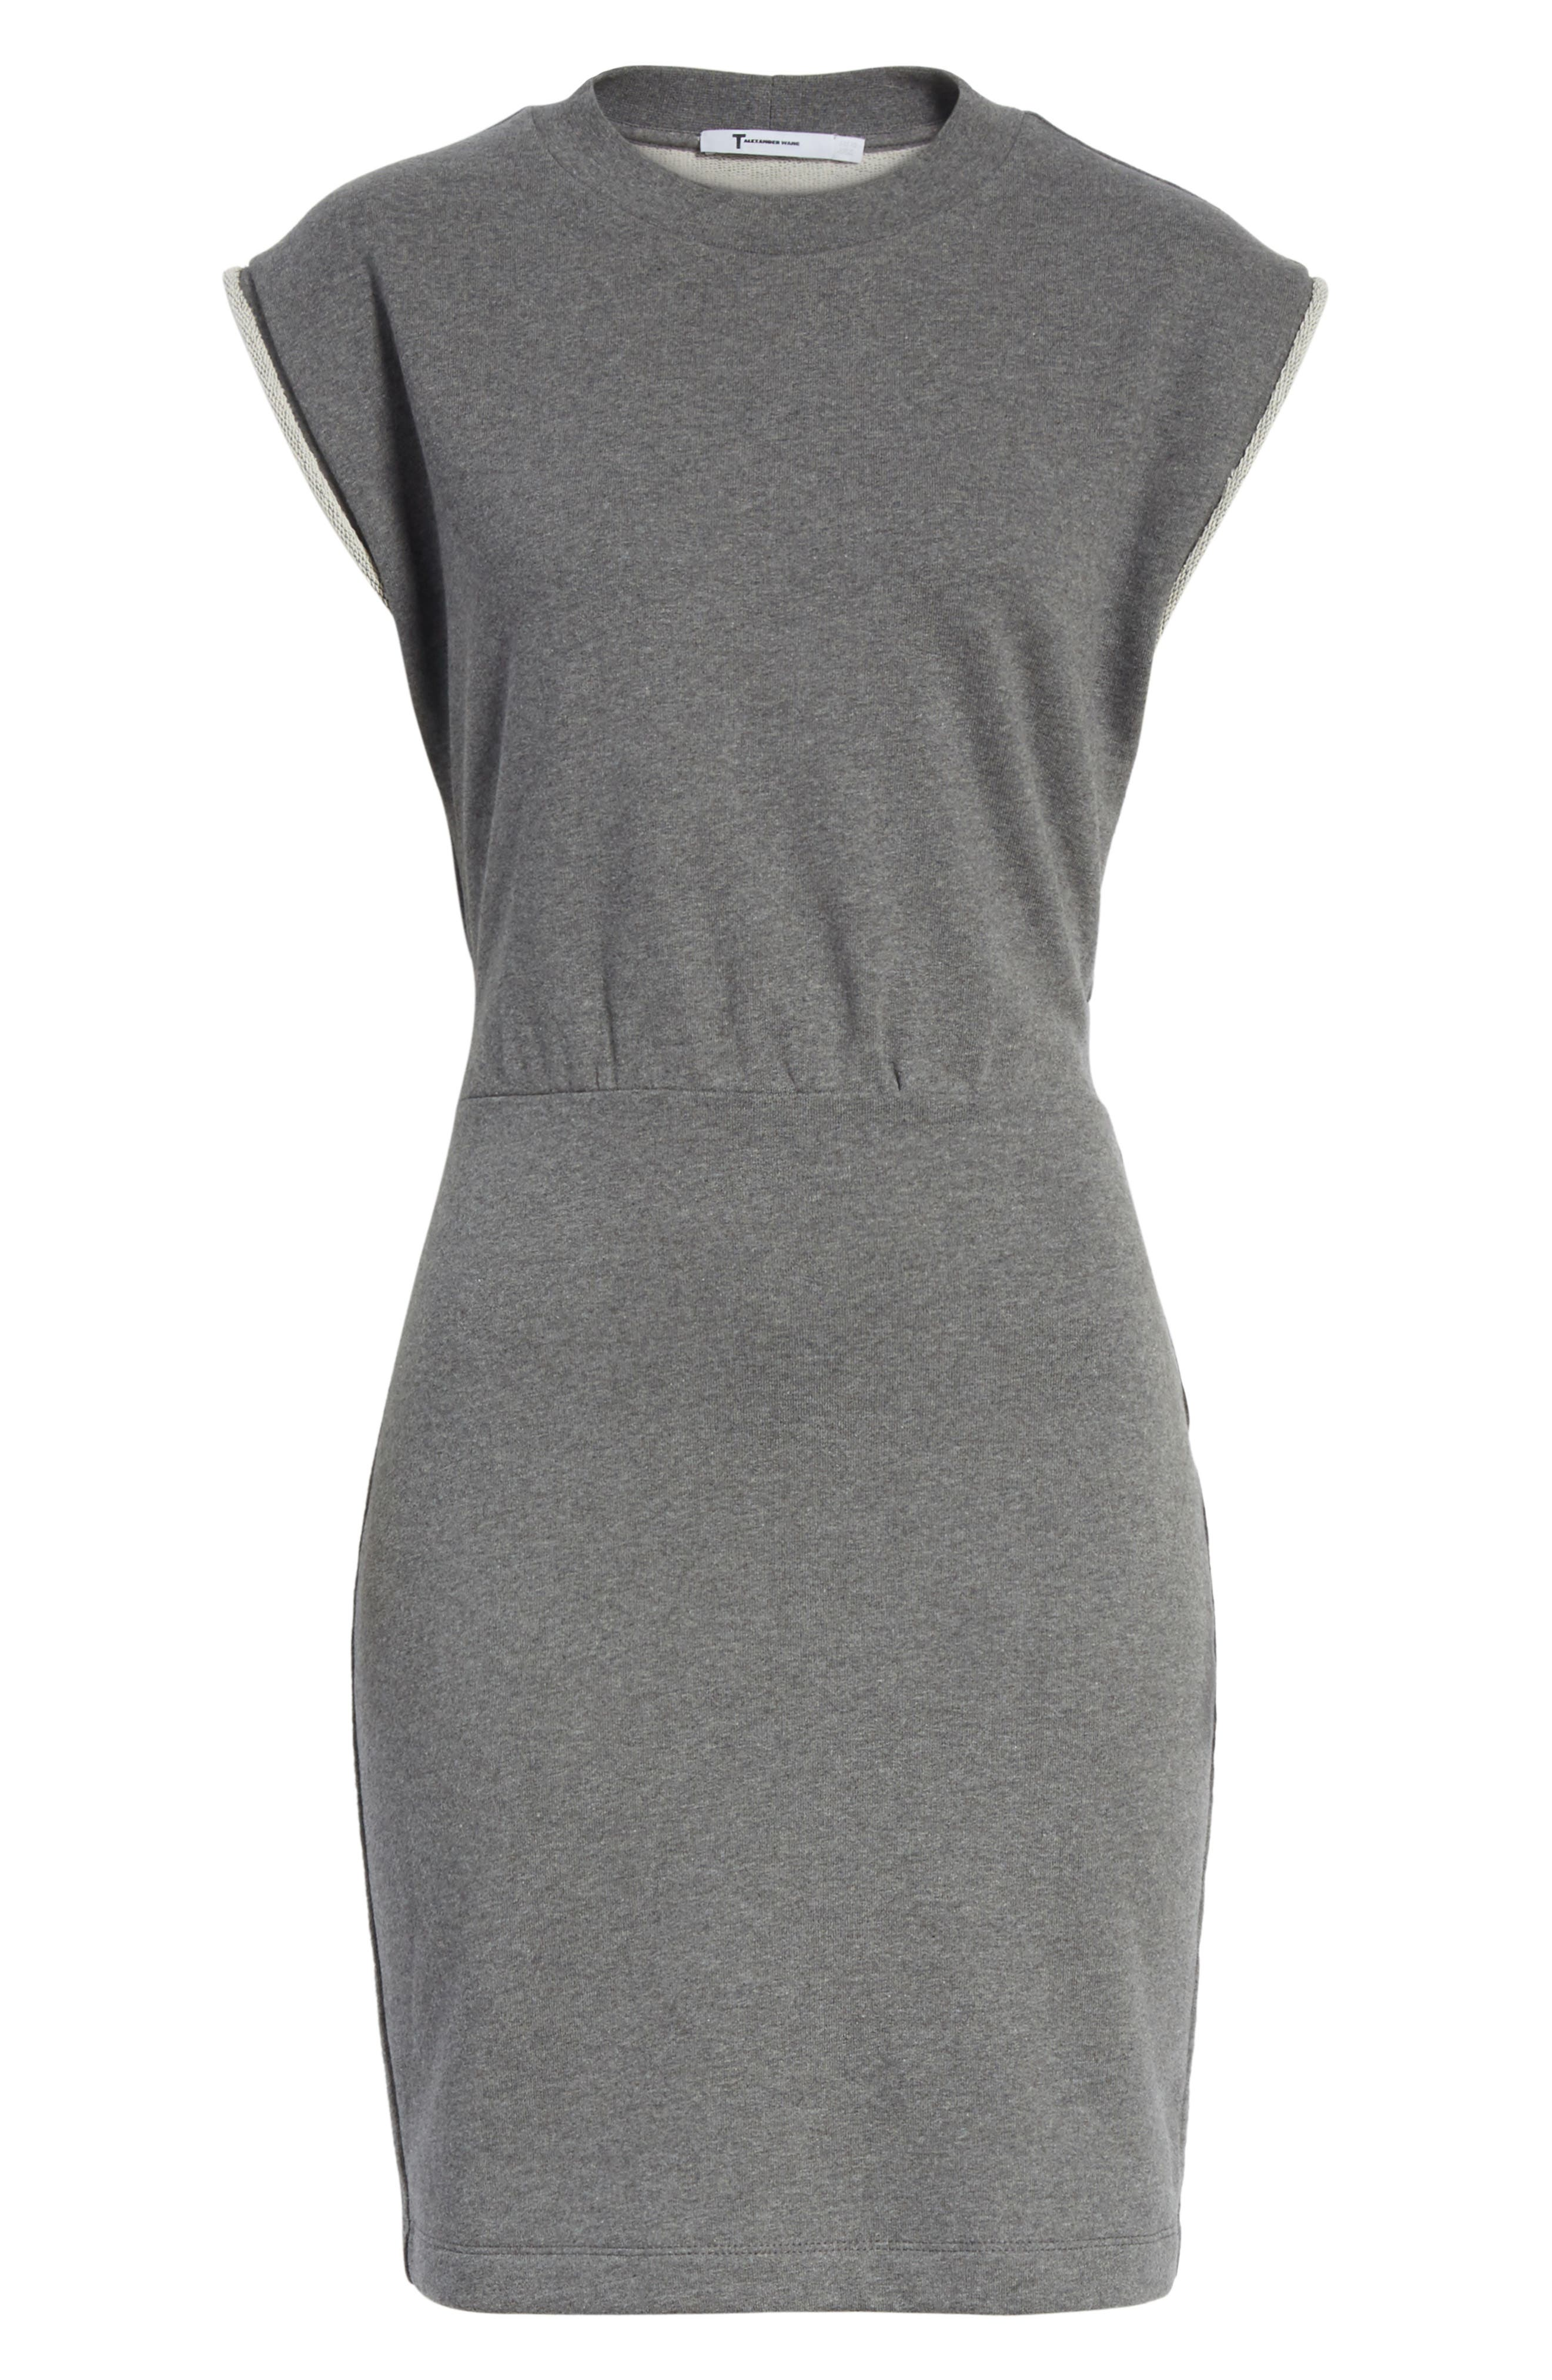 French Terry Dress,                             Alternate thumbnail 6, color,                             020